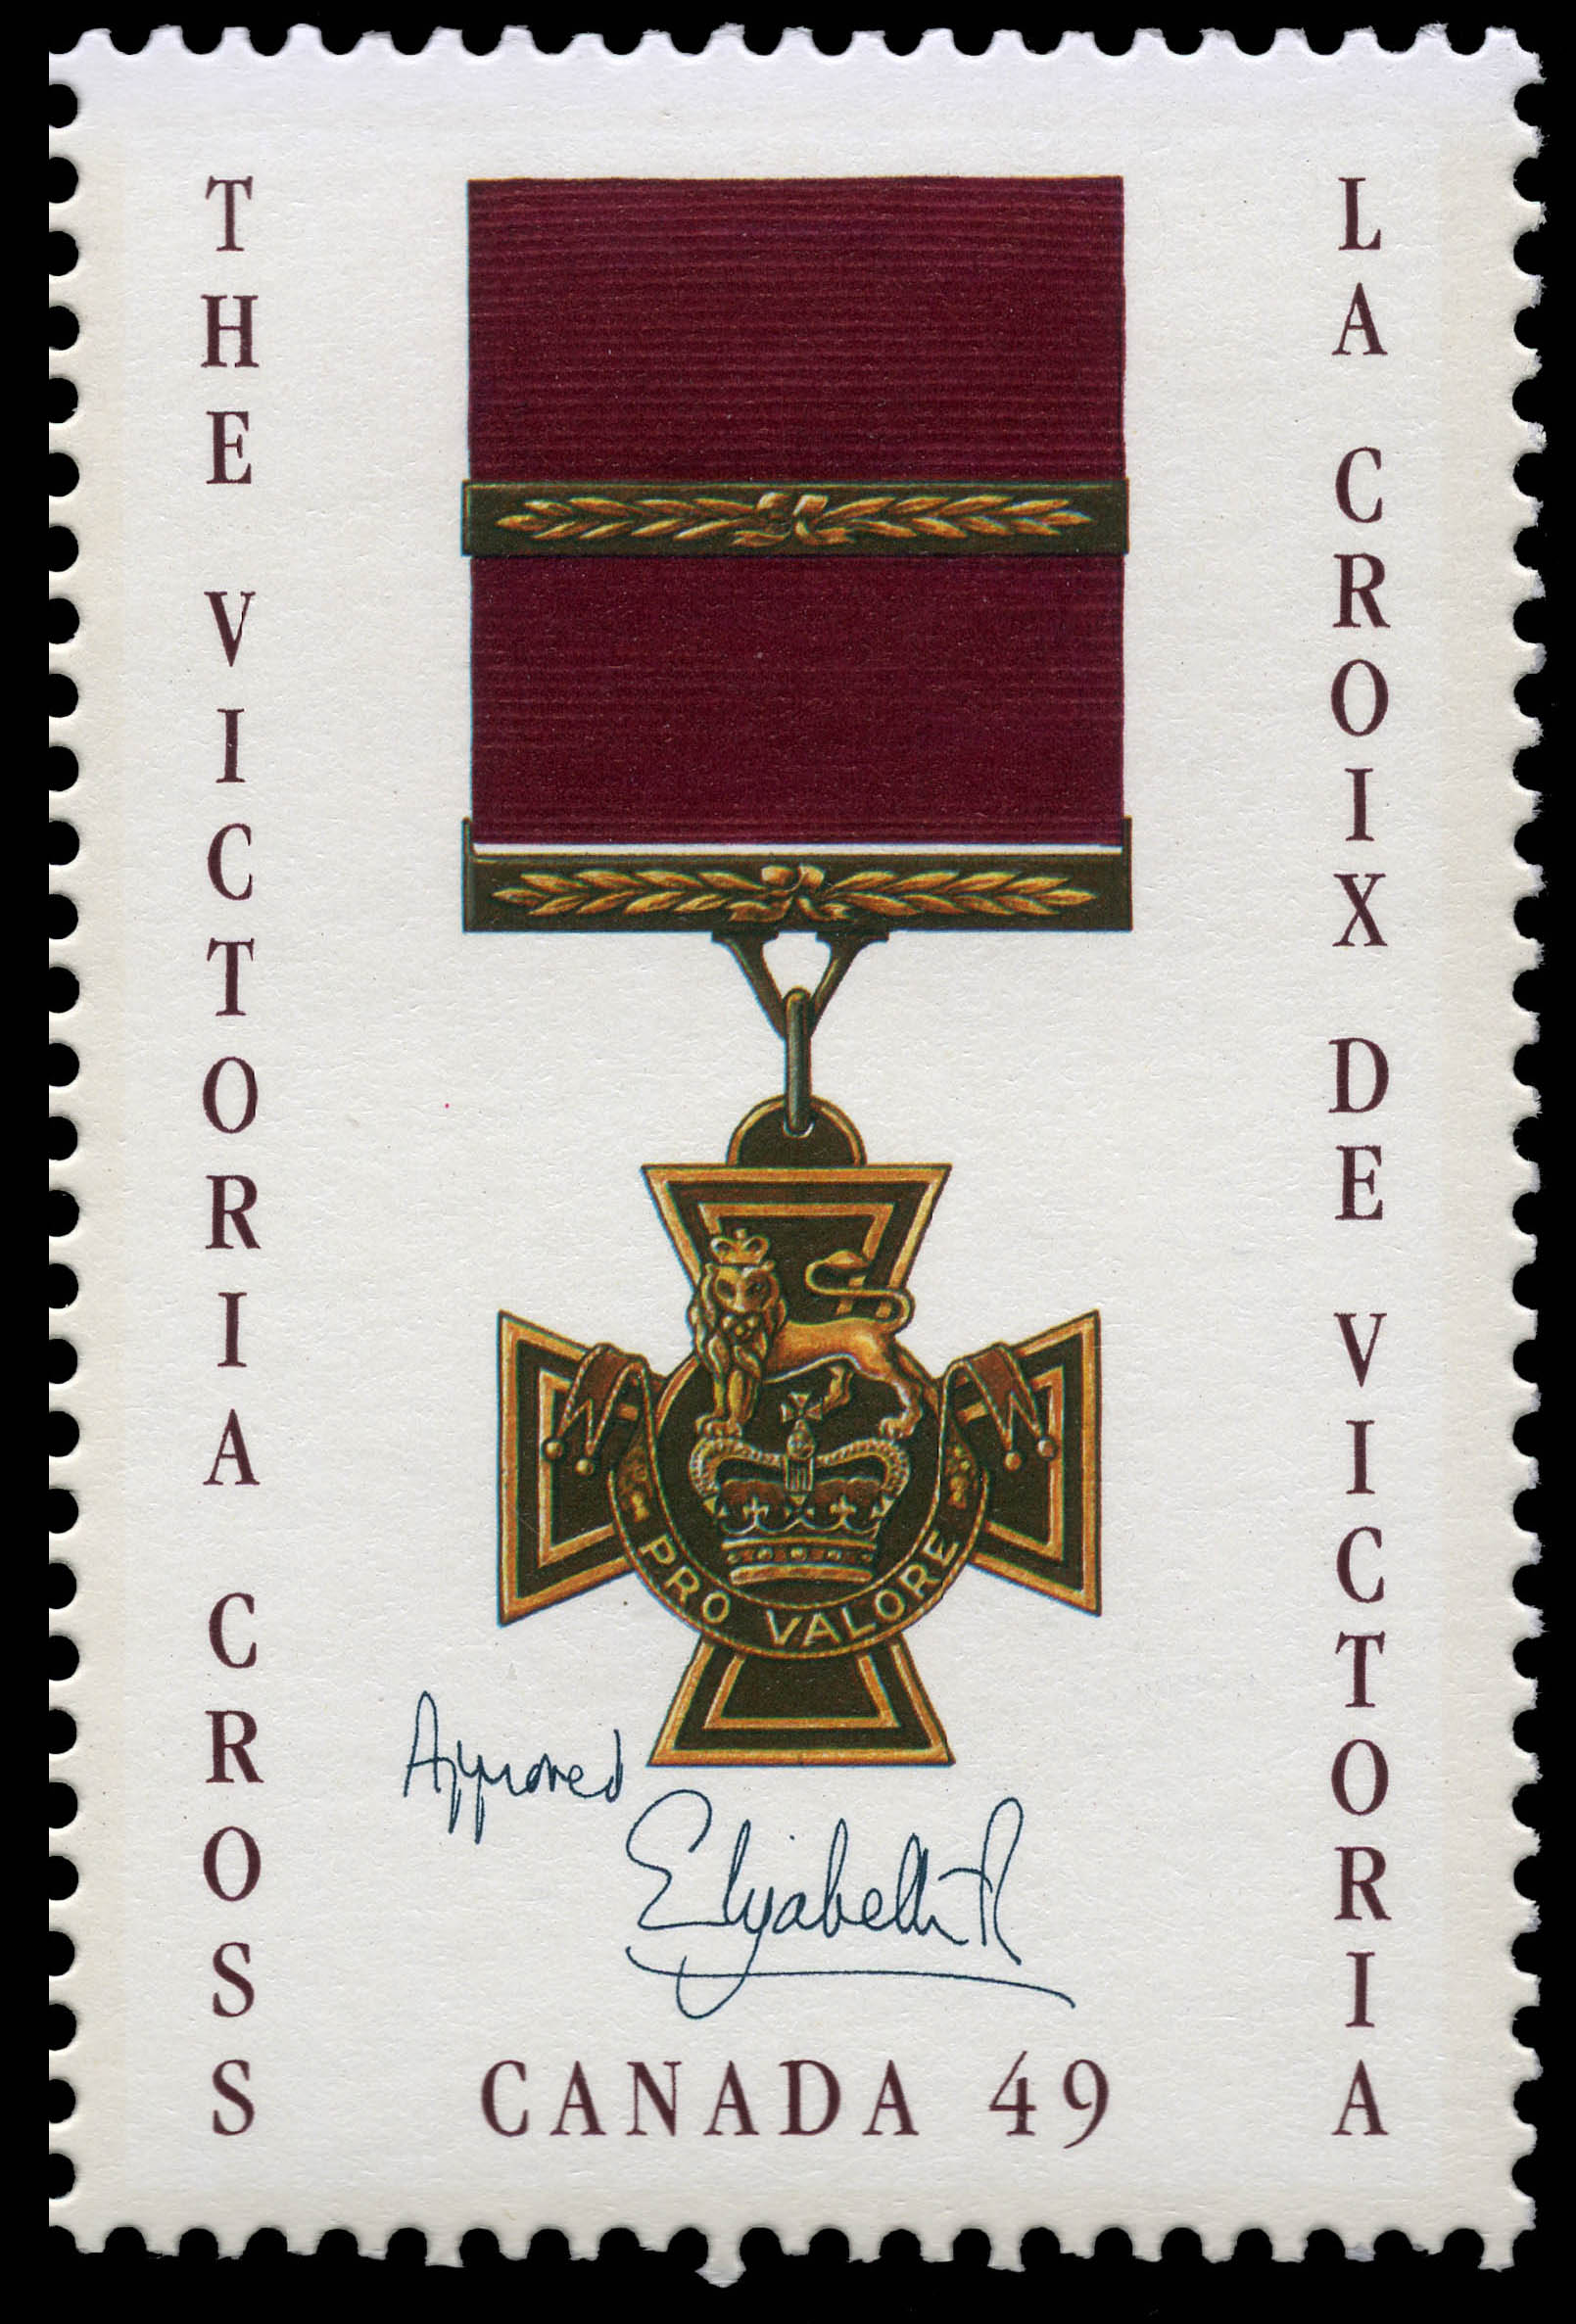 The Canadian Victoria Cross Canada Postage Stamp